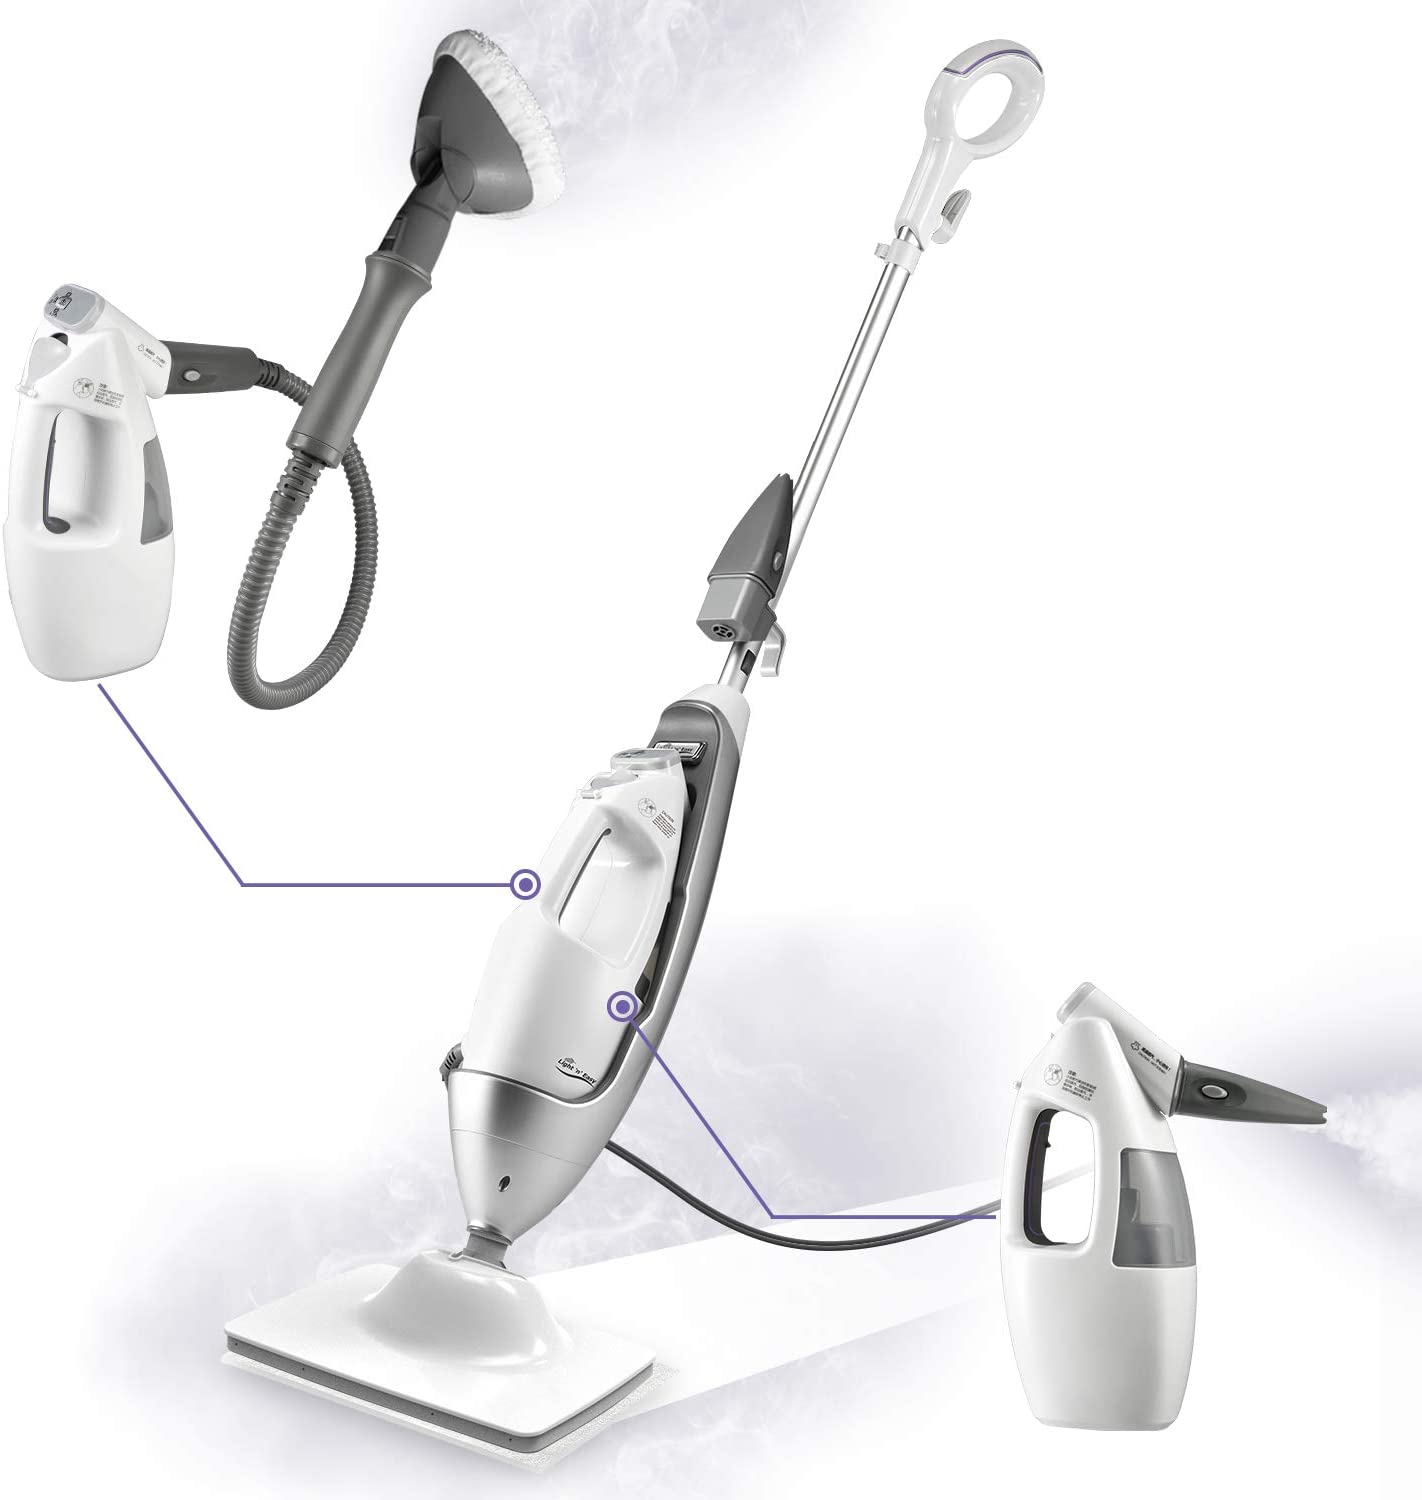 LIGHT 'N' EASY Multifunctional Steam Mop with Detachable Handheld Unit